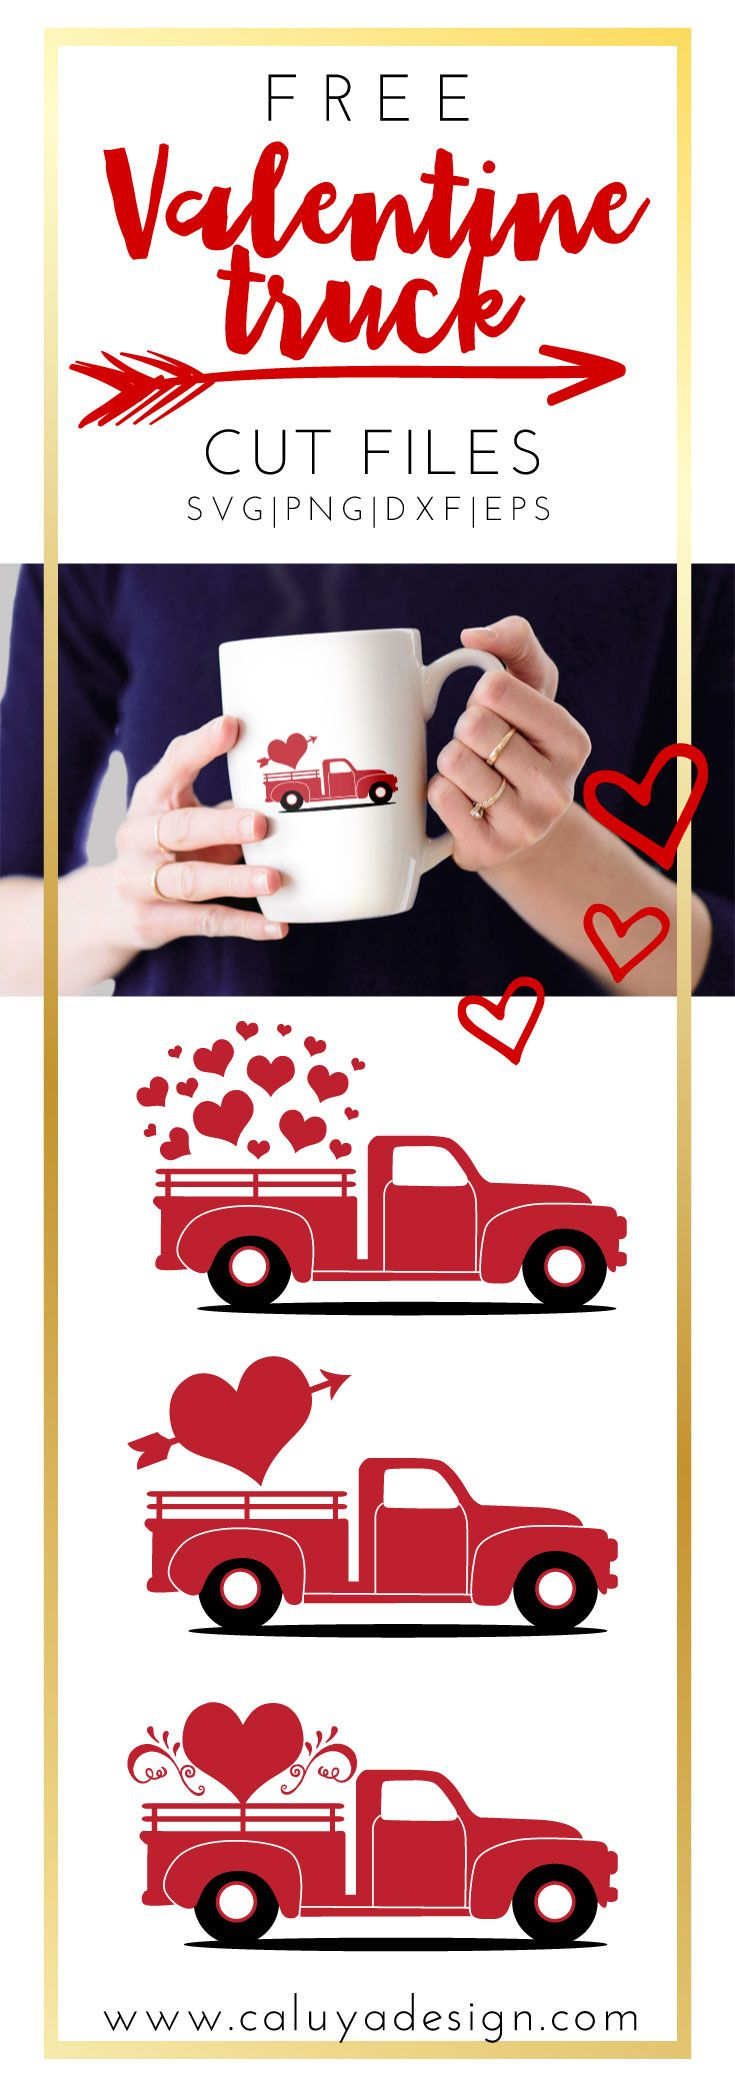 FREE Valentine Vintage Truck SVG file. Free Valentine old truck SVG, PNG, EPS, DXF compatible with Cricut, Cameo Silhouette. Free Valentine SVG file. Free Valentine cut file